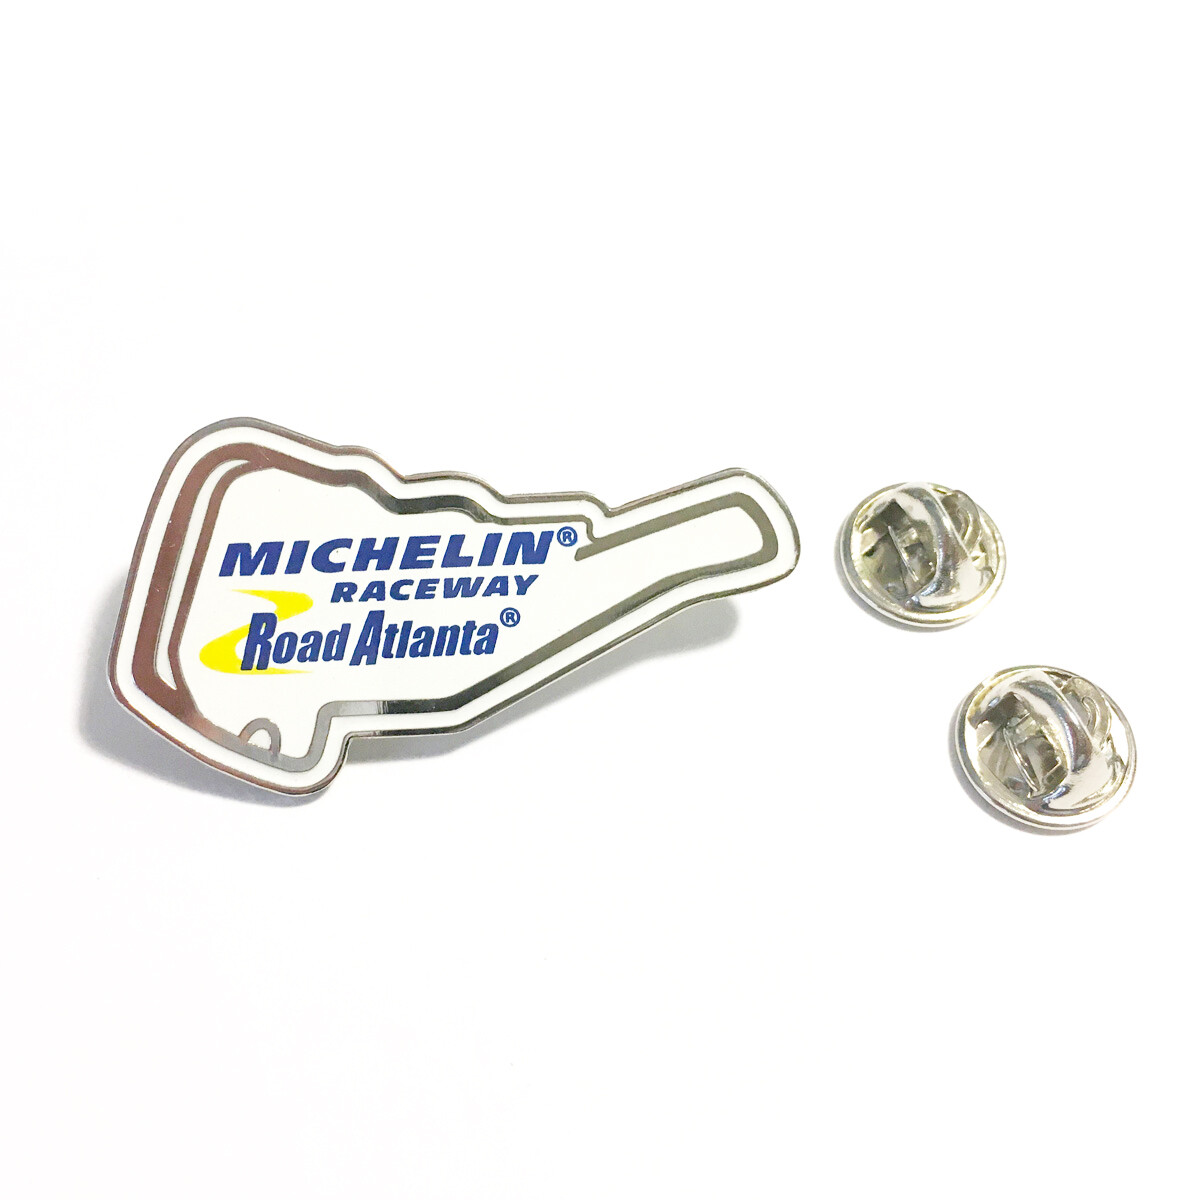 Michelin Raceway Road Atlanta Lapel Pin